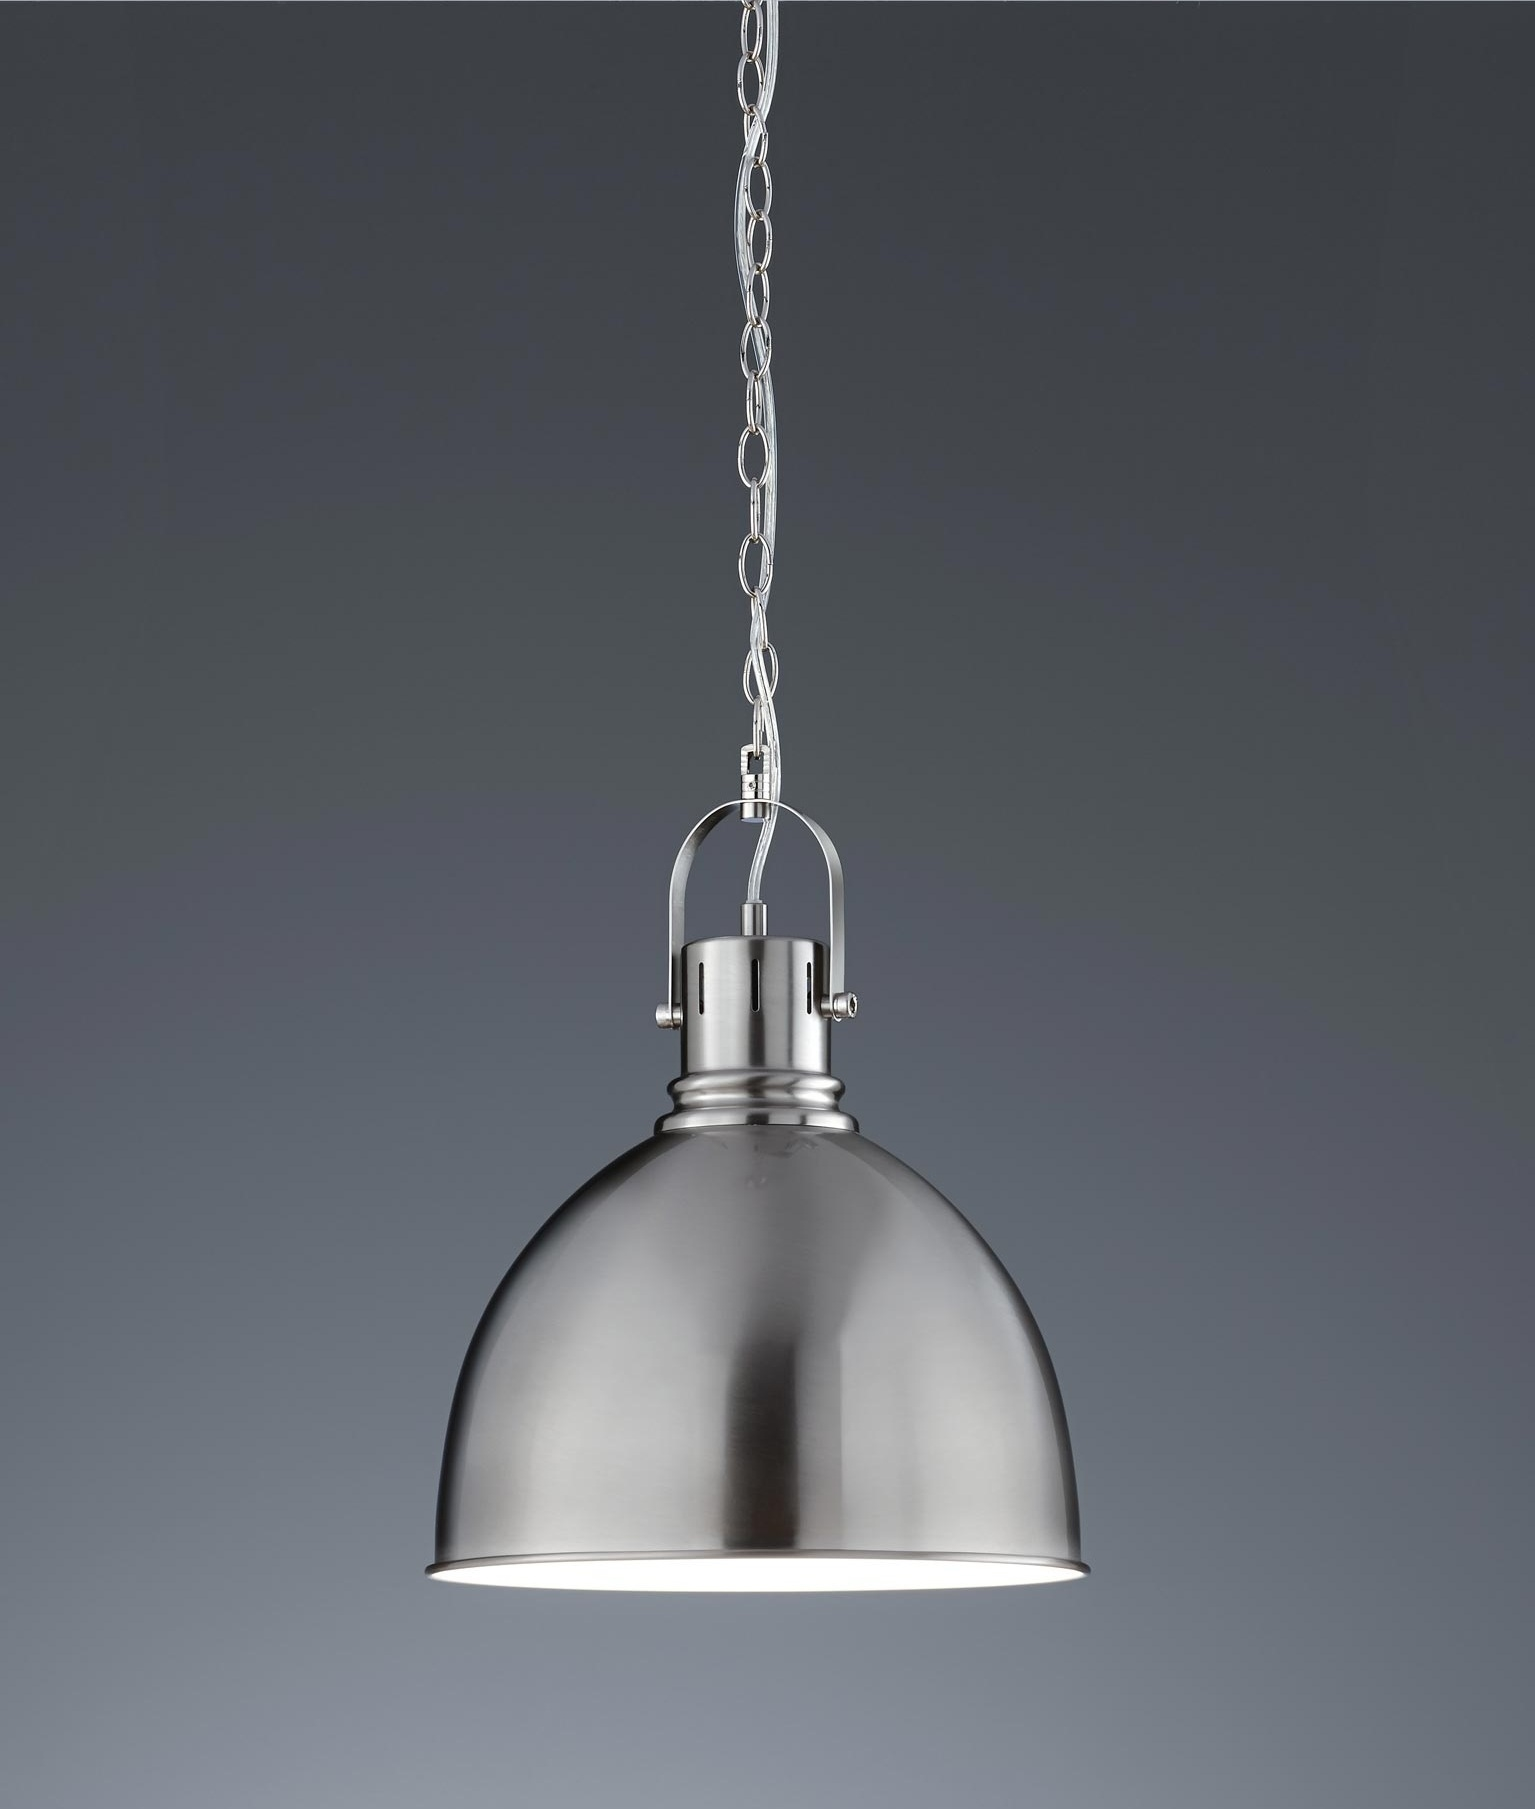 Stylish Metal Pendant Available In Copper Or Satin Nickel